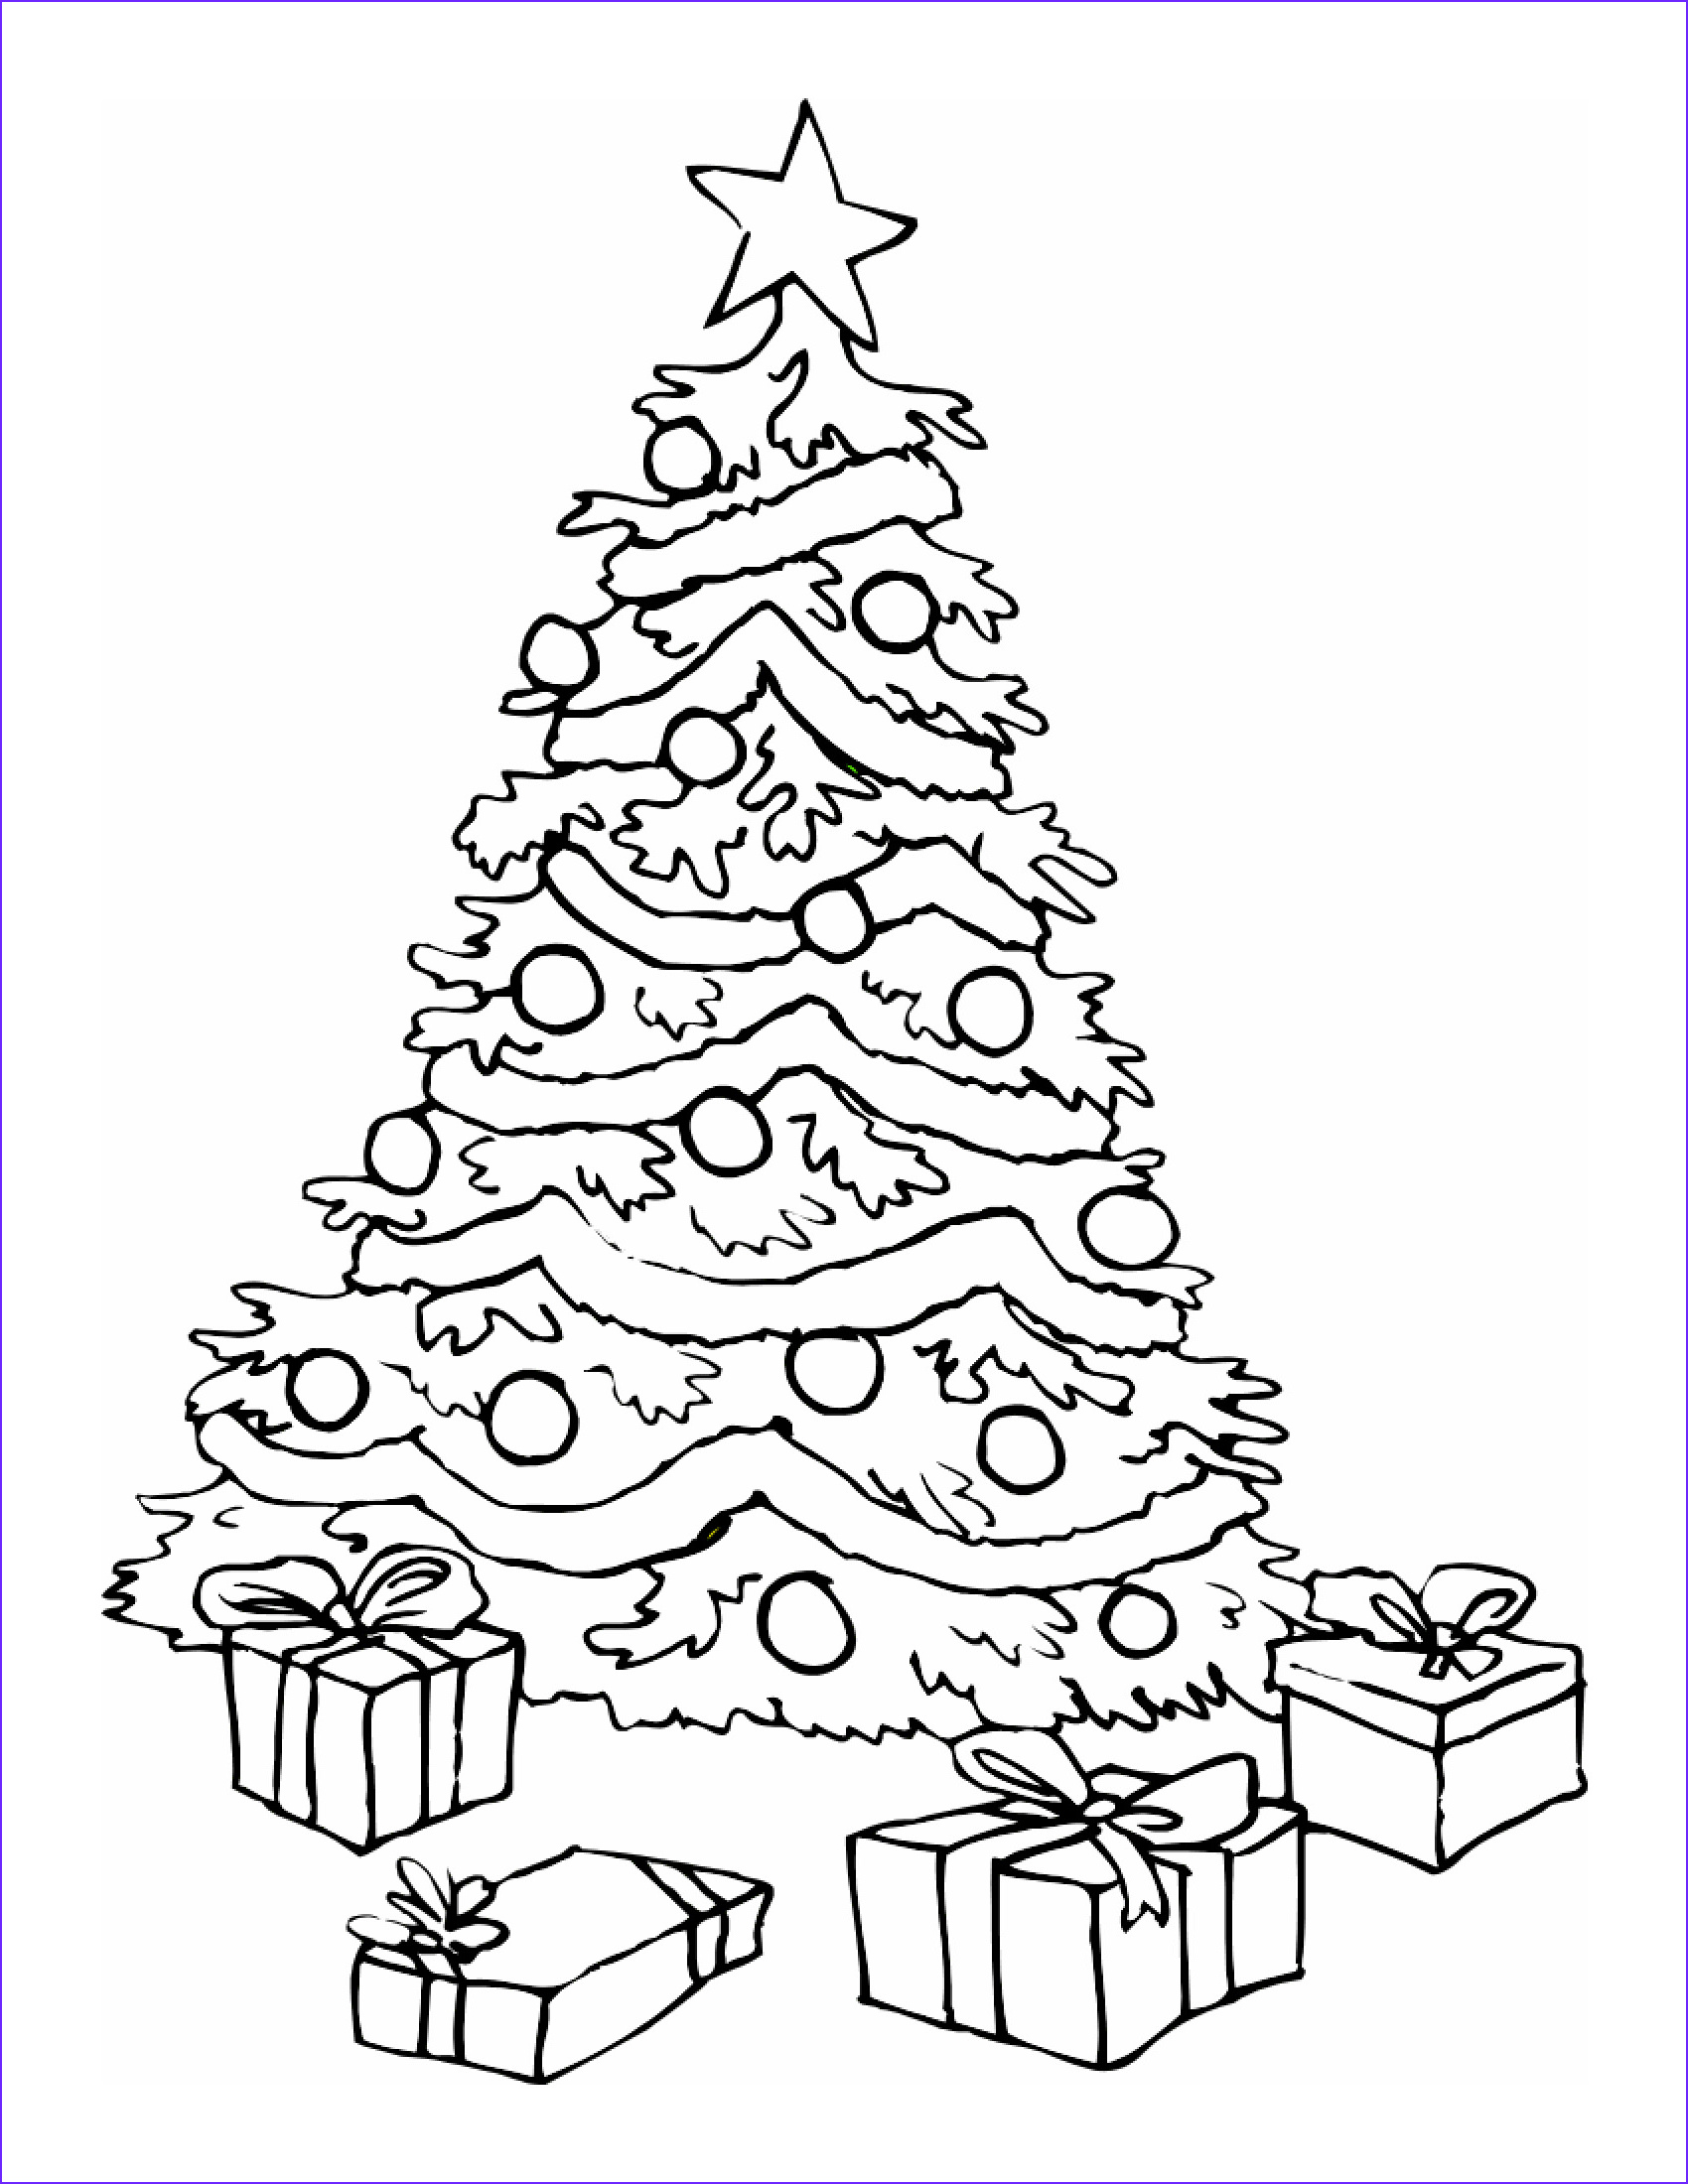 Christmas Tree Coloring Luxury Image Crafts at Coloring Page ...